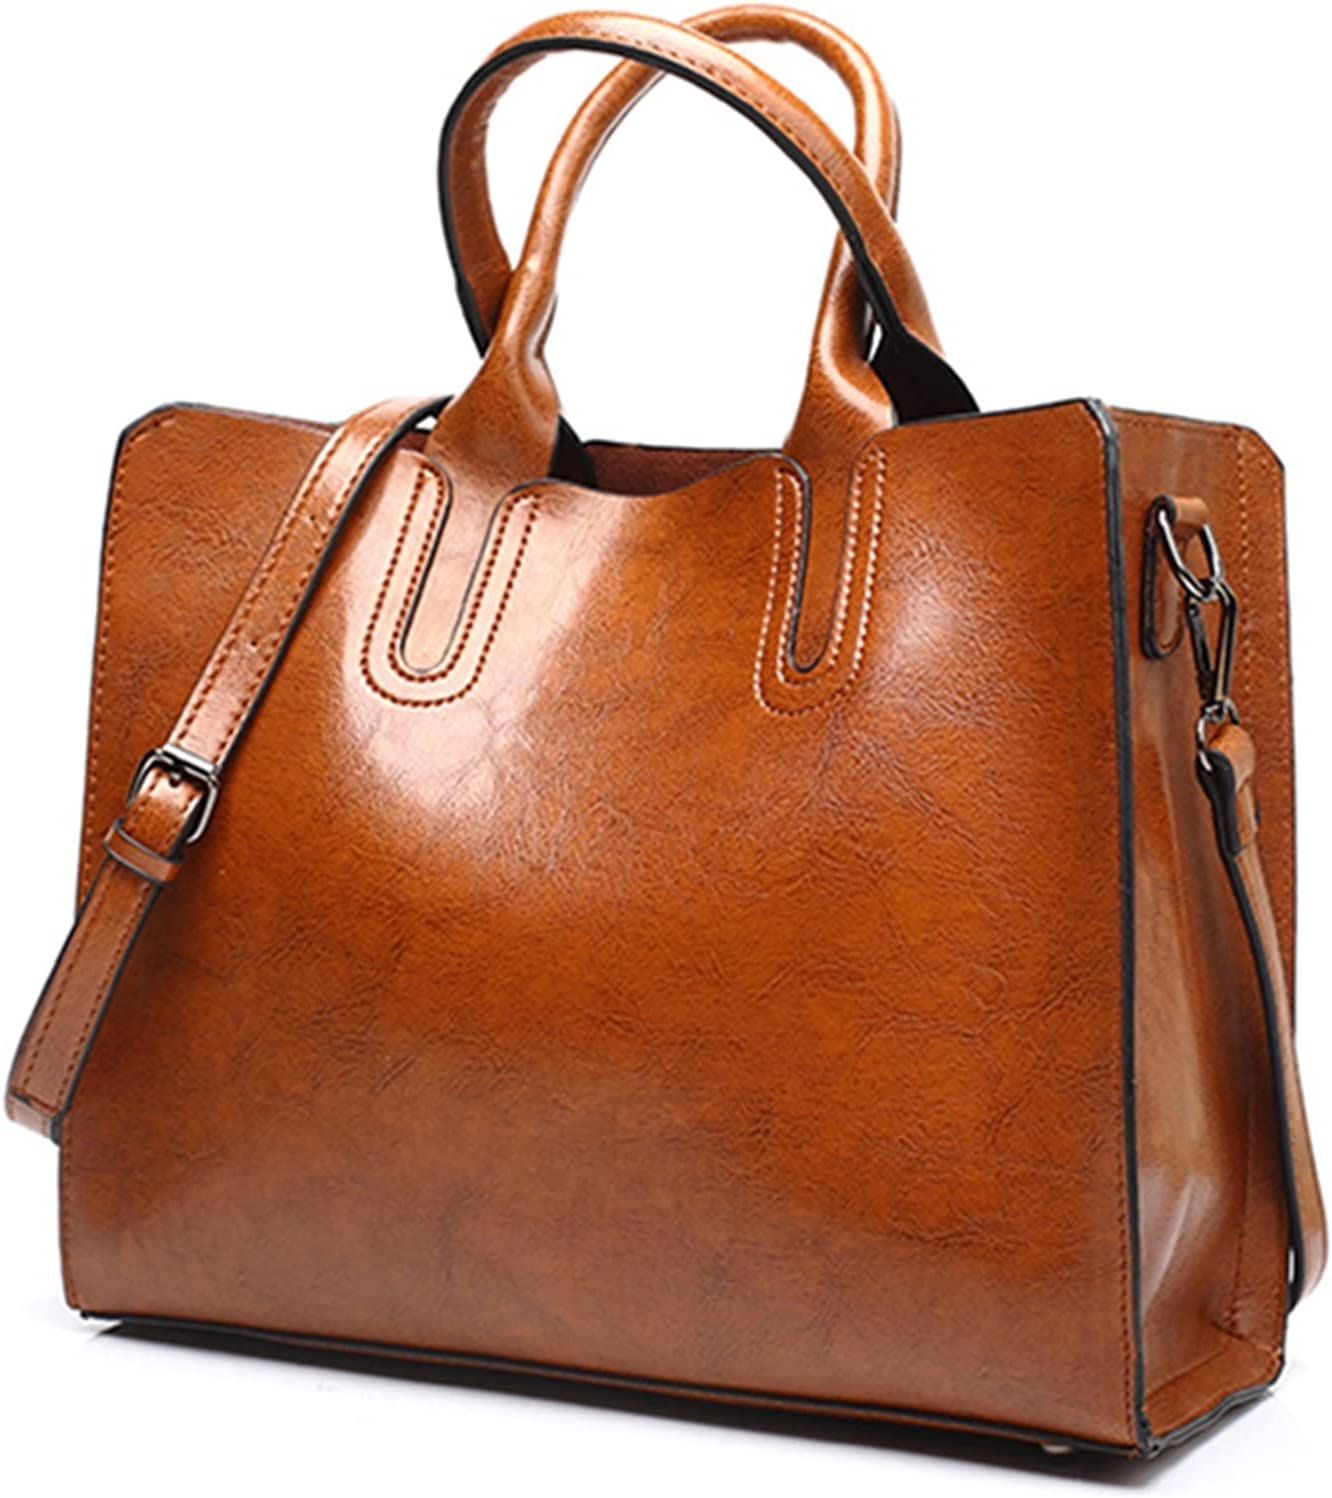 N\C Vintage Oil Wax Leather Now free shipping Single-Shoul Chicago Mall Fashion Simple Bag Tote